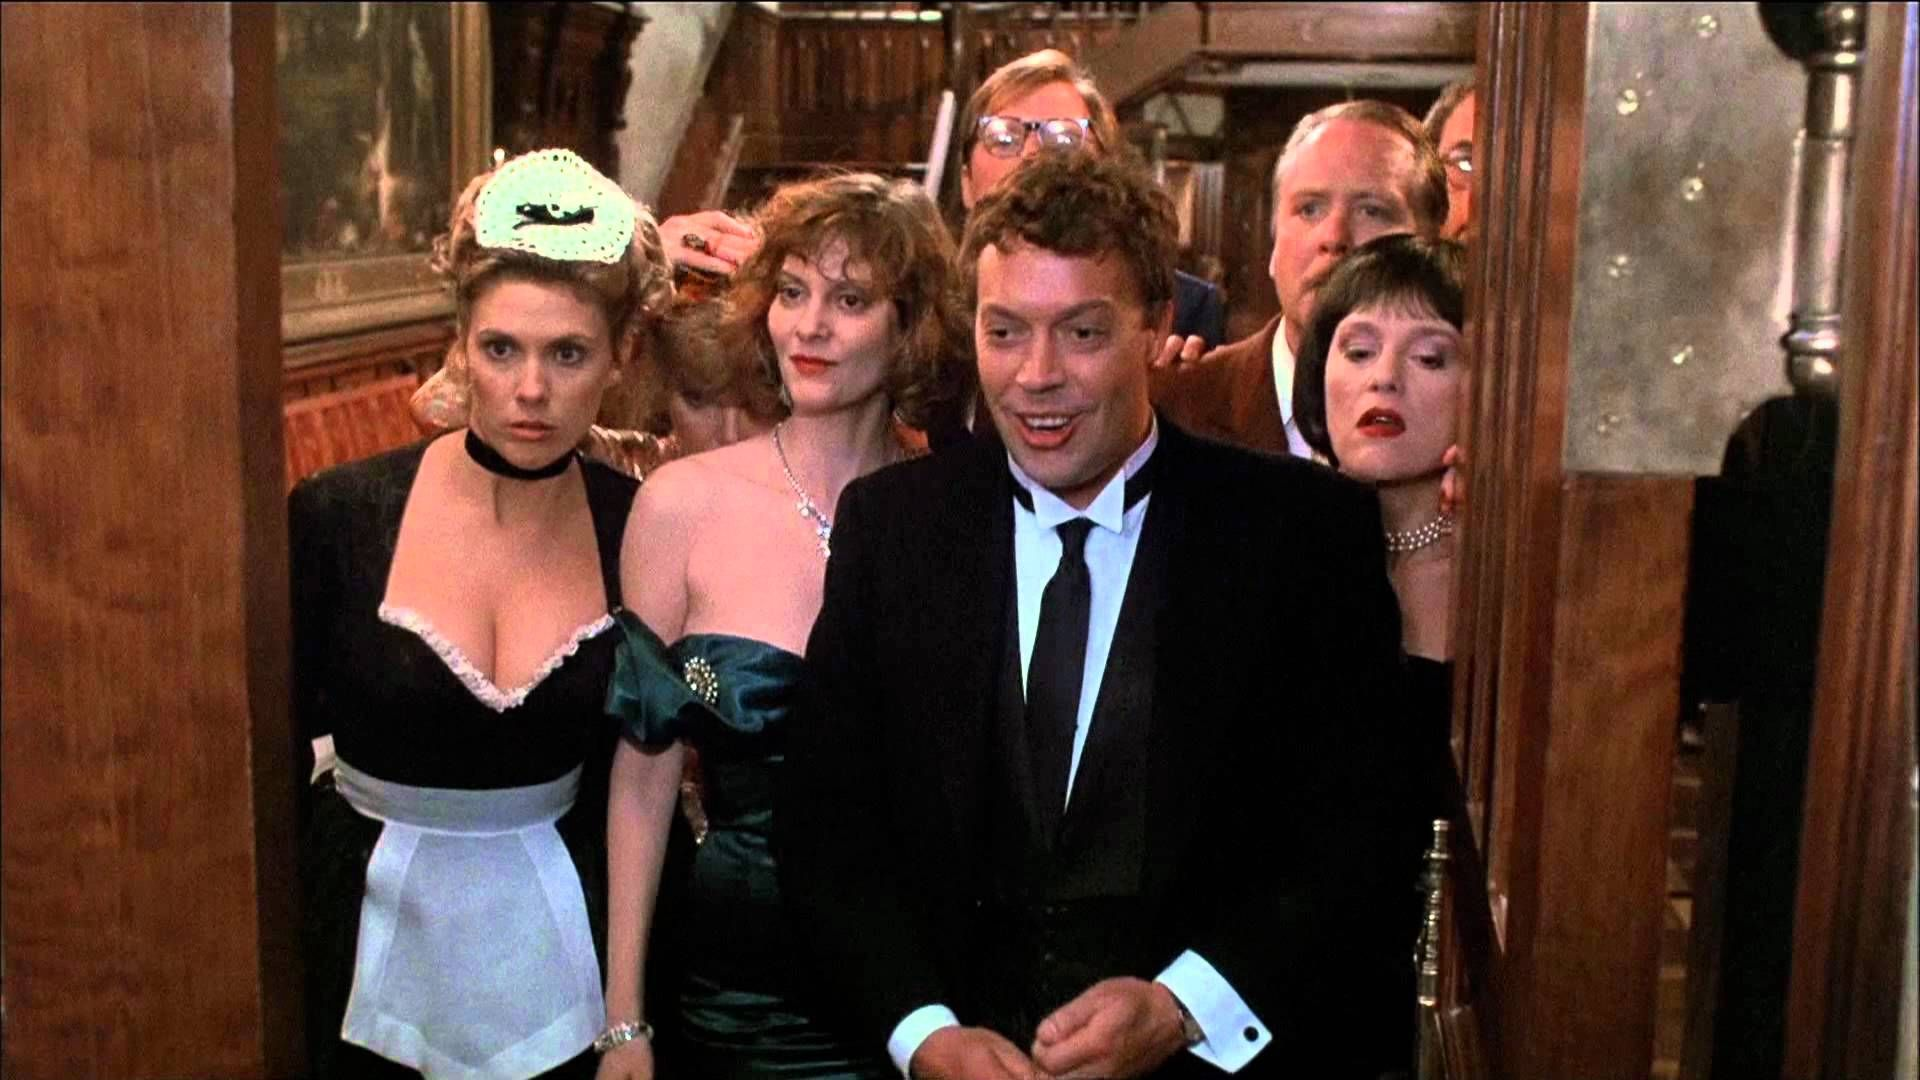 Image Result For Colleen Camp Clue Clue Movie Good Movies